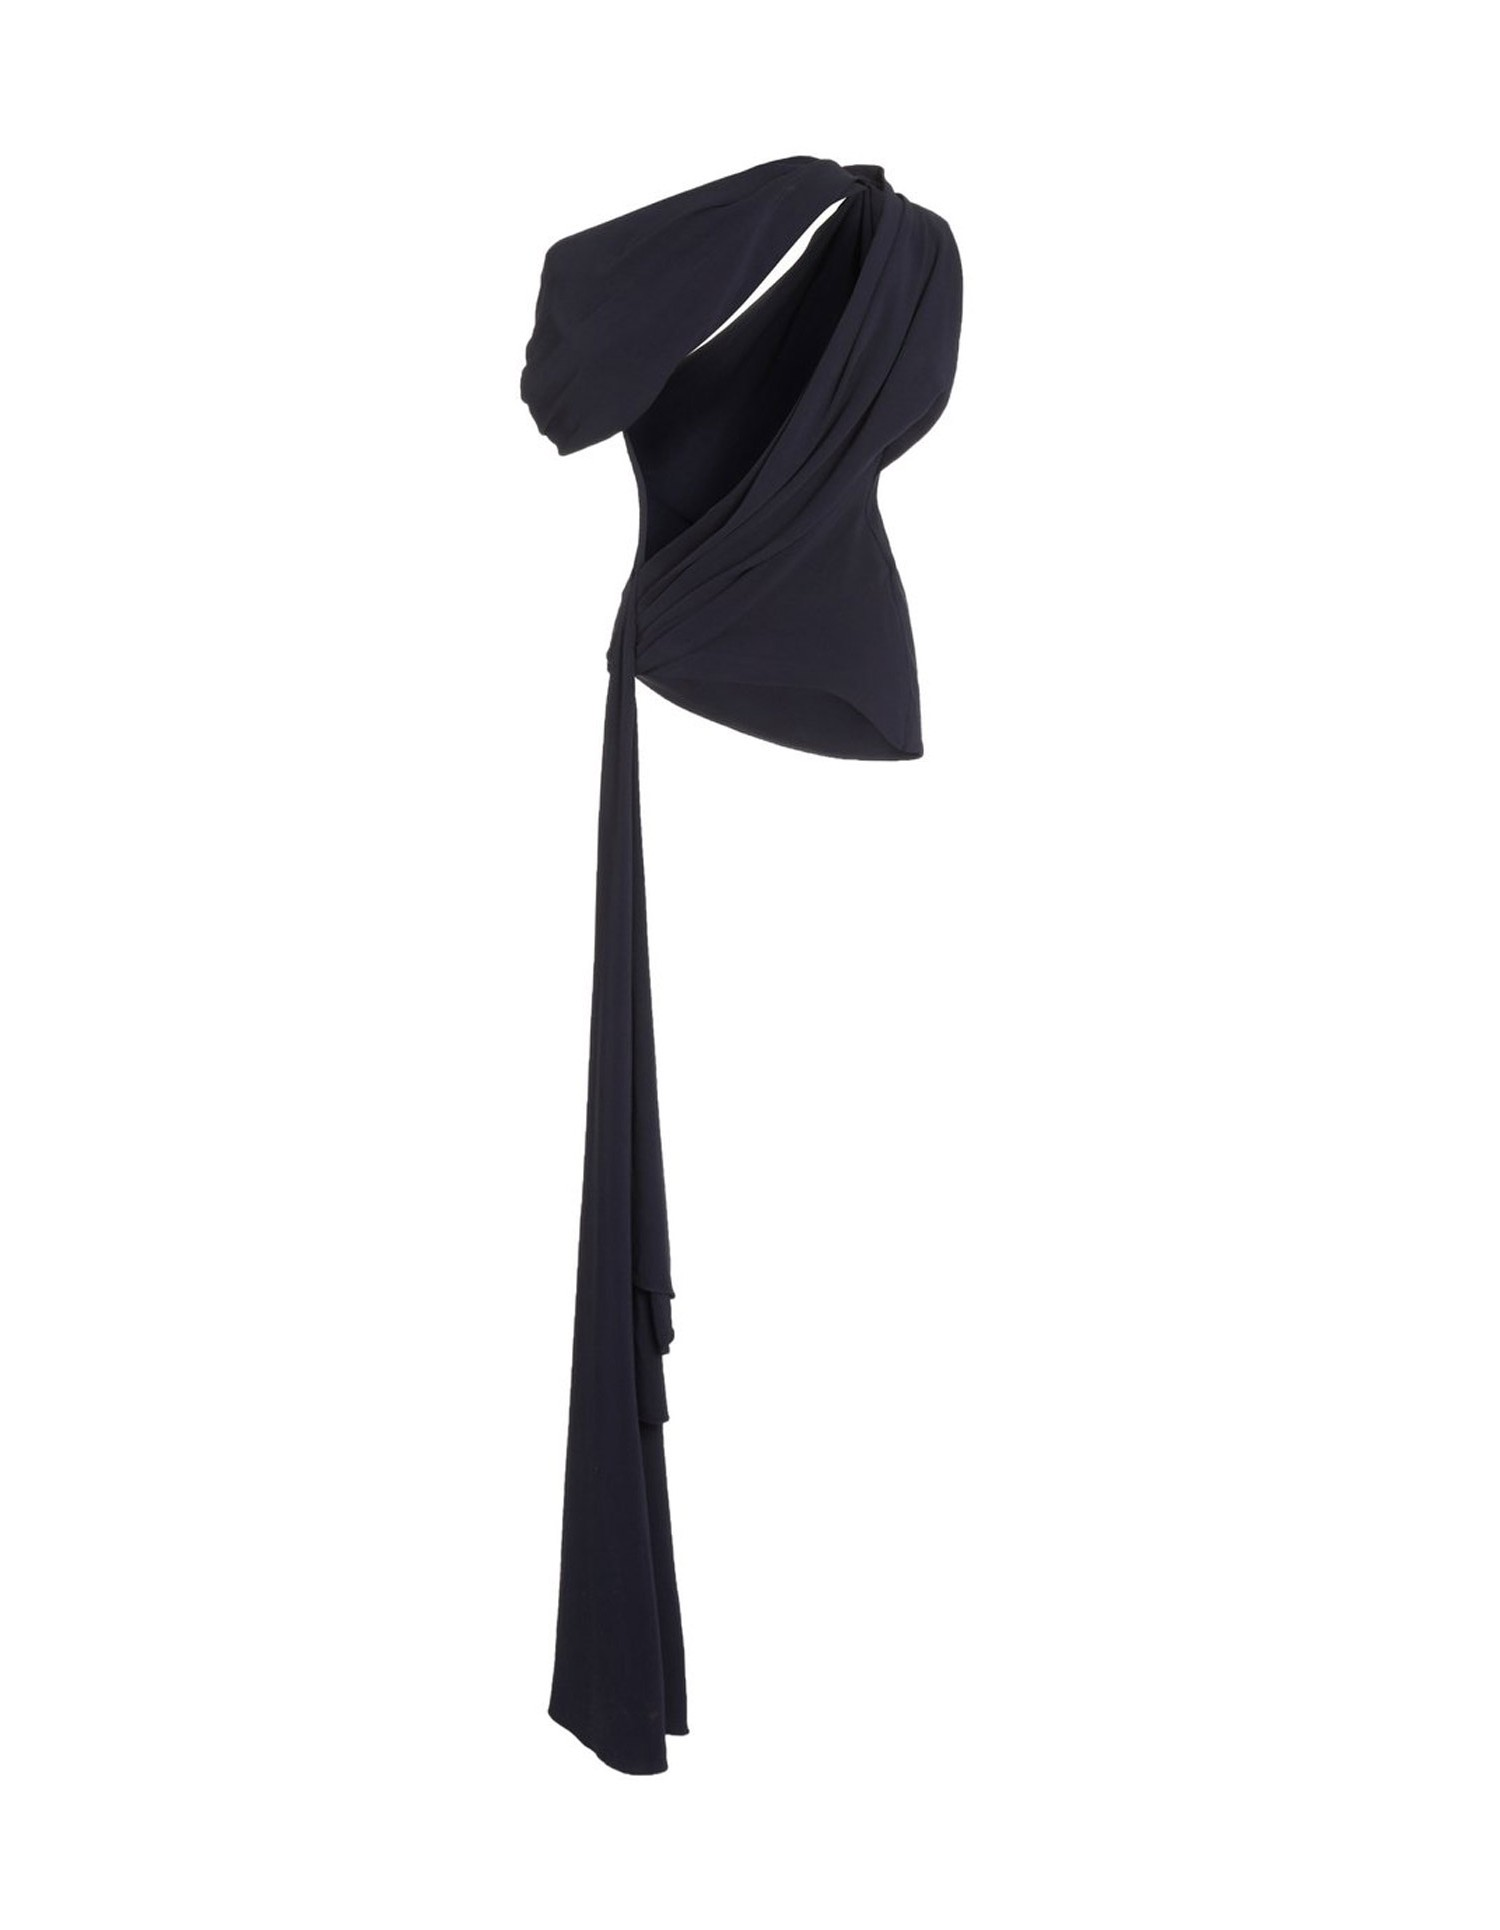 MONSE Knotted Shoulder Drape Top in Midnight Flat Back